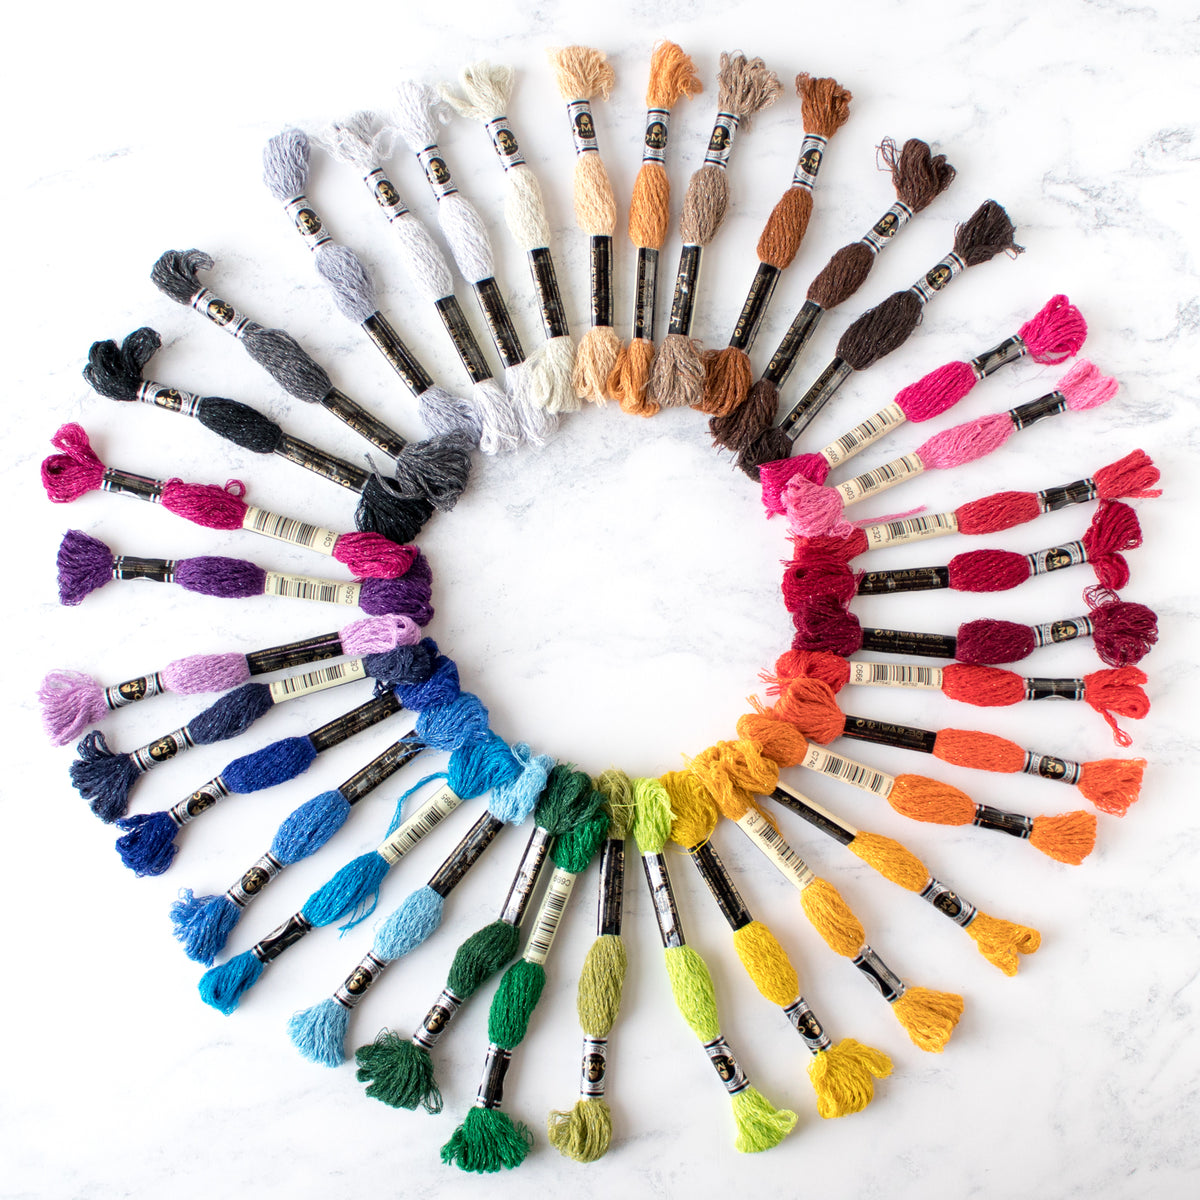 DMC Mouliné Étoile Embroidery Floss Collection - Set of 35 Colors